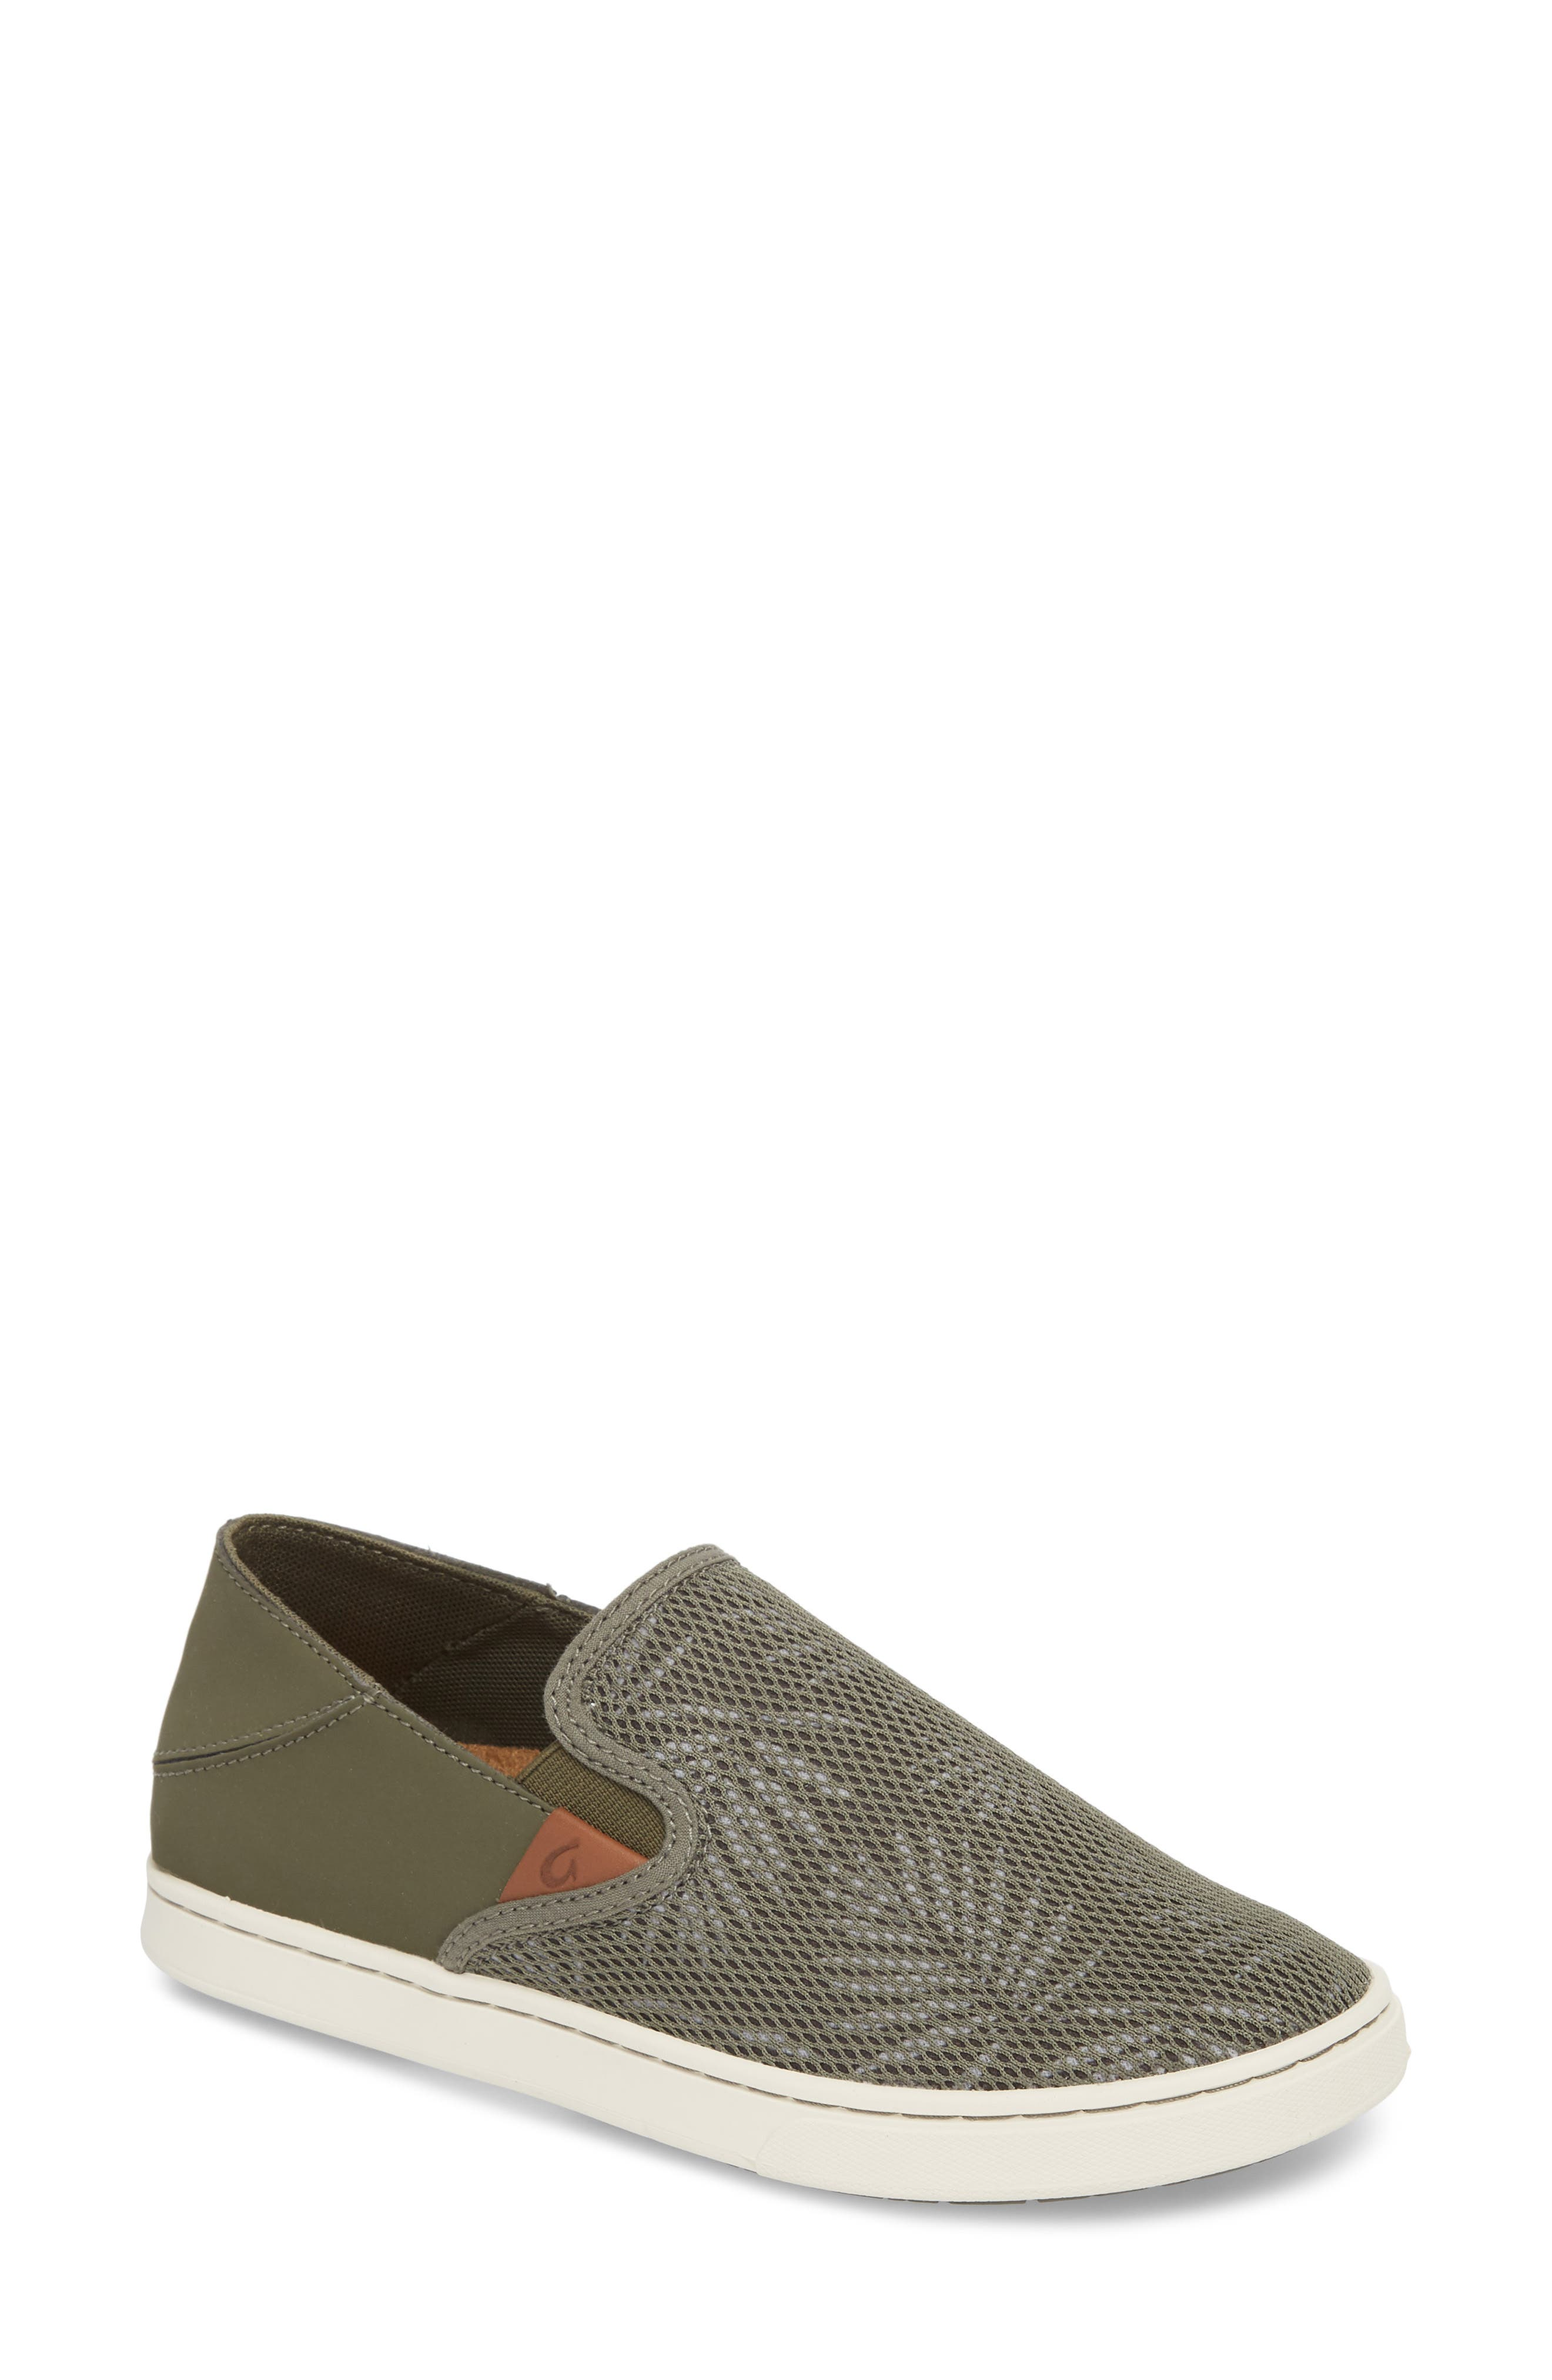 'Pehuea' Slip-On Sneaker,                         Main,                         color, Dusty Olive/ Palm Fabric